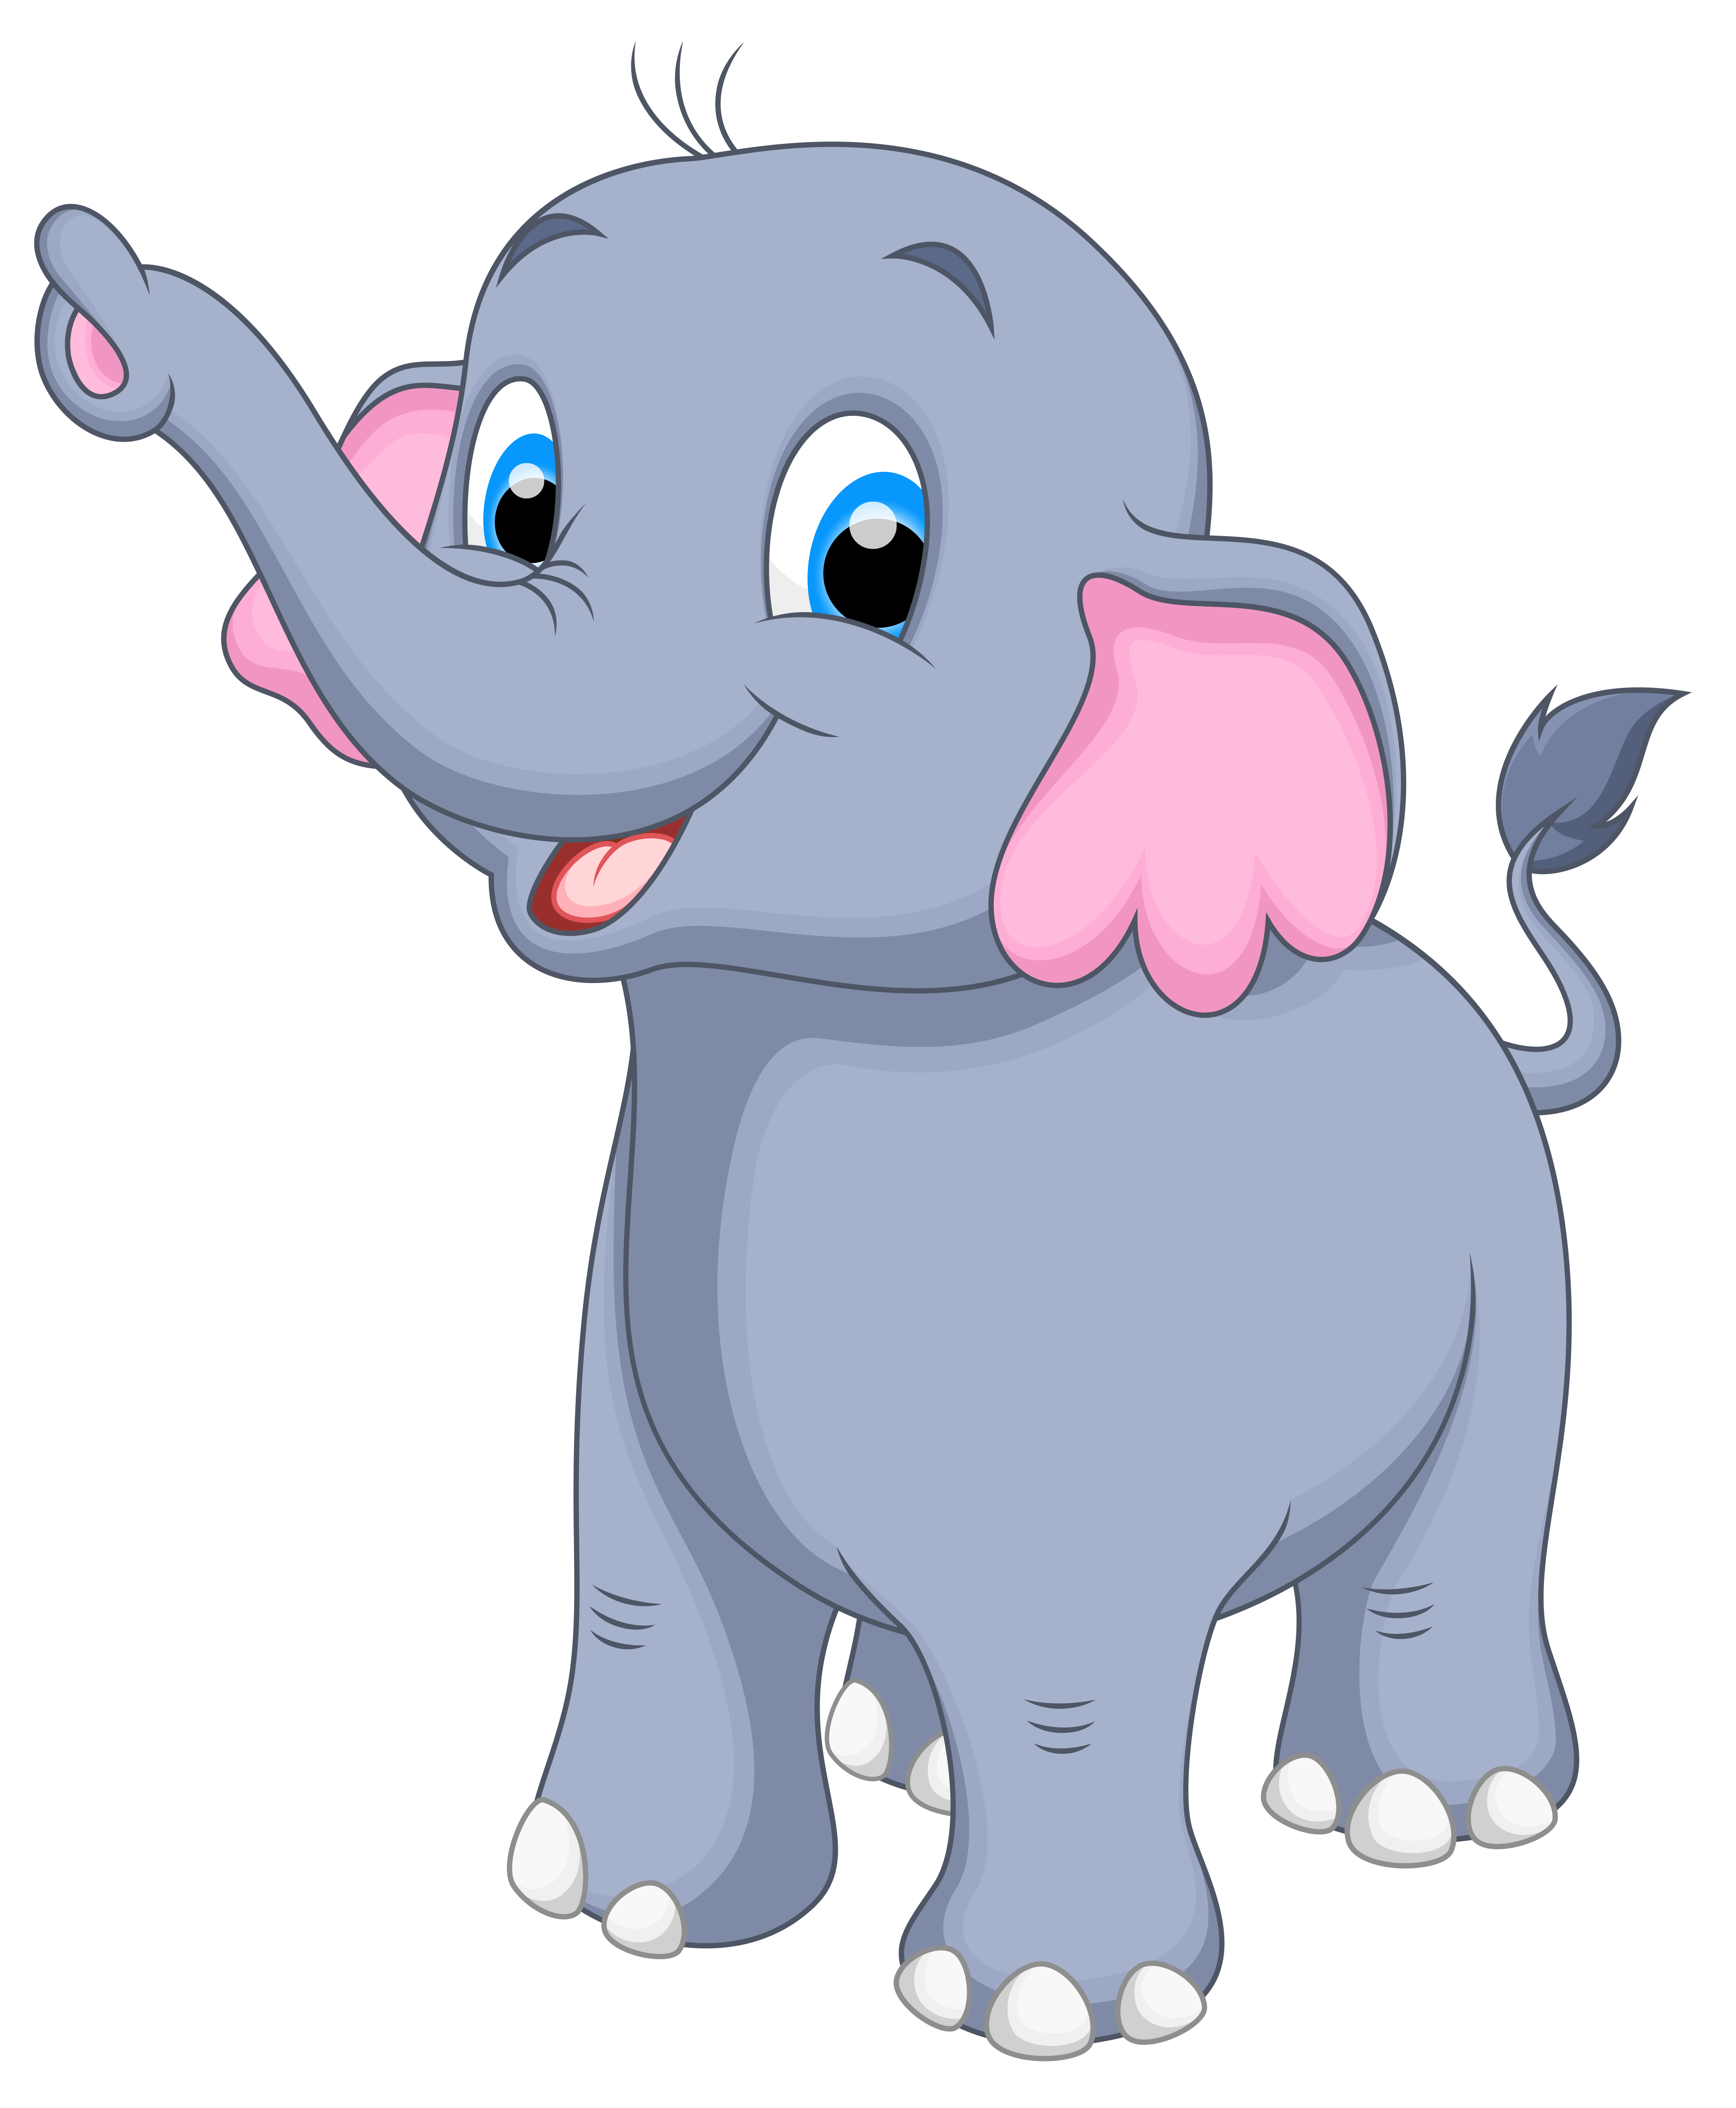 Elephant clip art. Little png clipart image clip royalty free stock